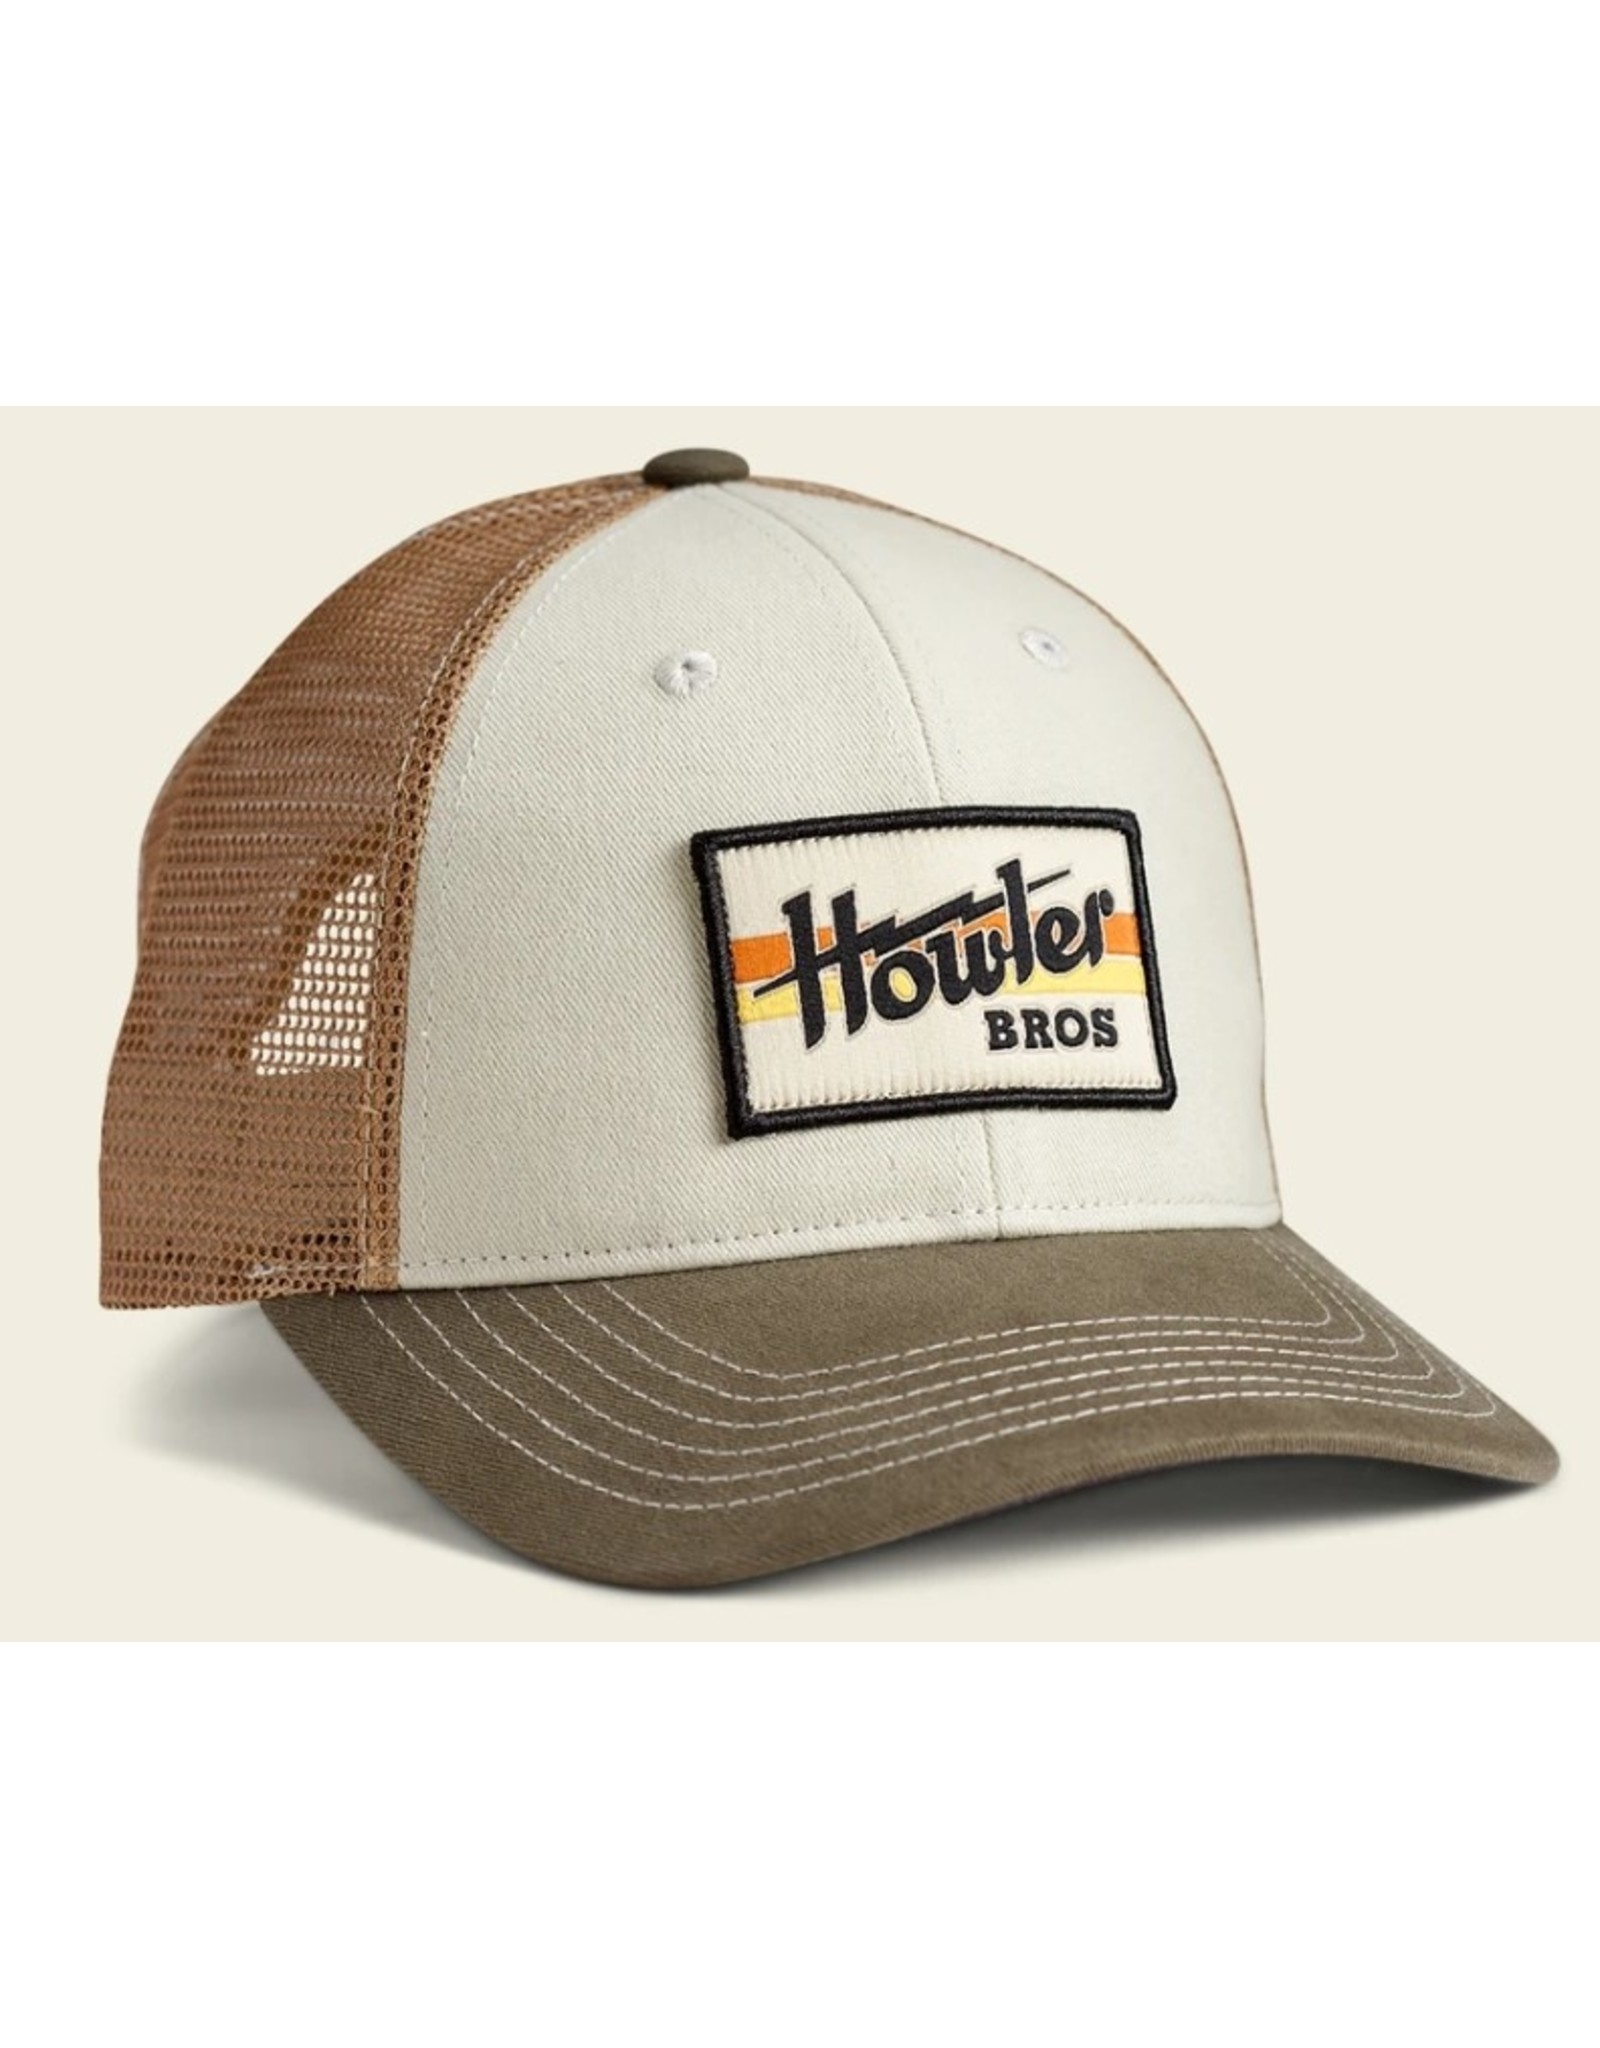 Howler Bros HB Howler Electric Stripe Standard Hat - Stone/Gold/Rifle